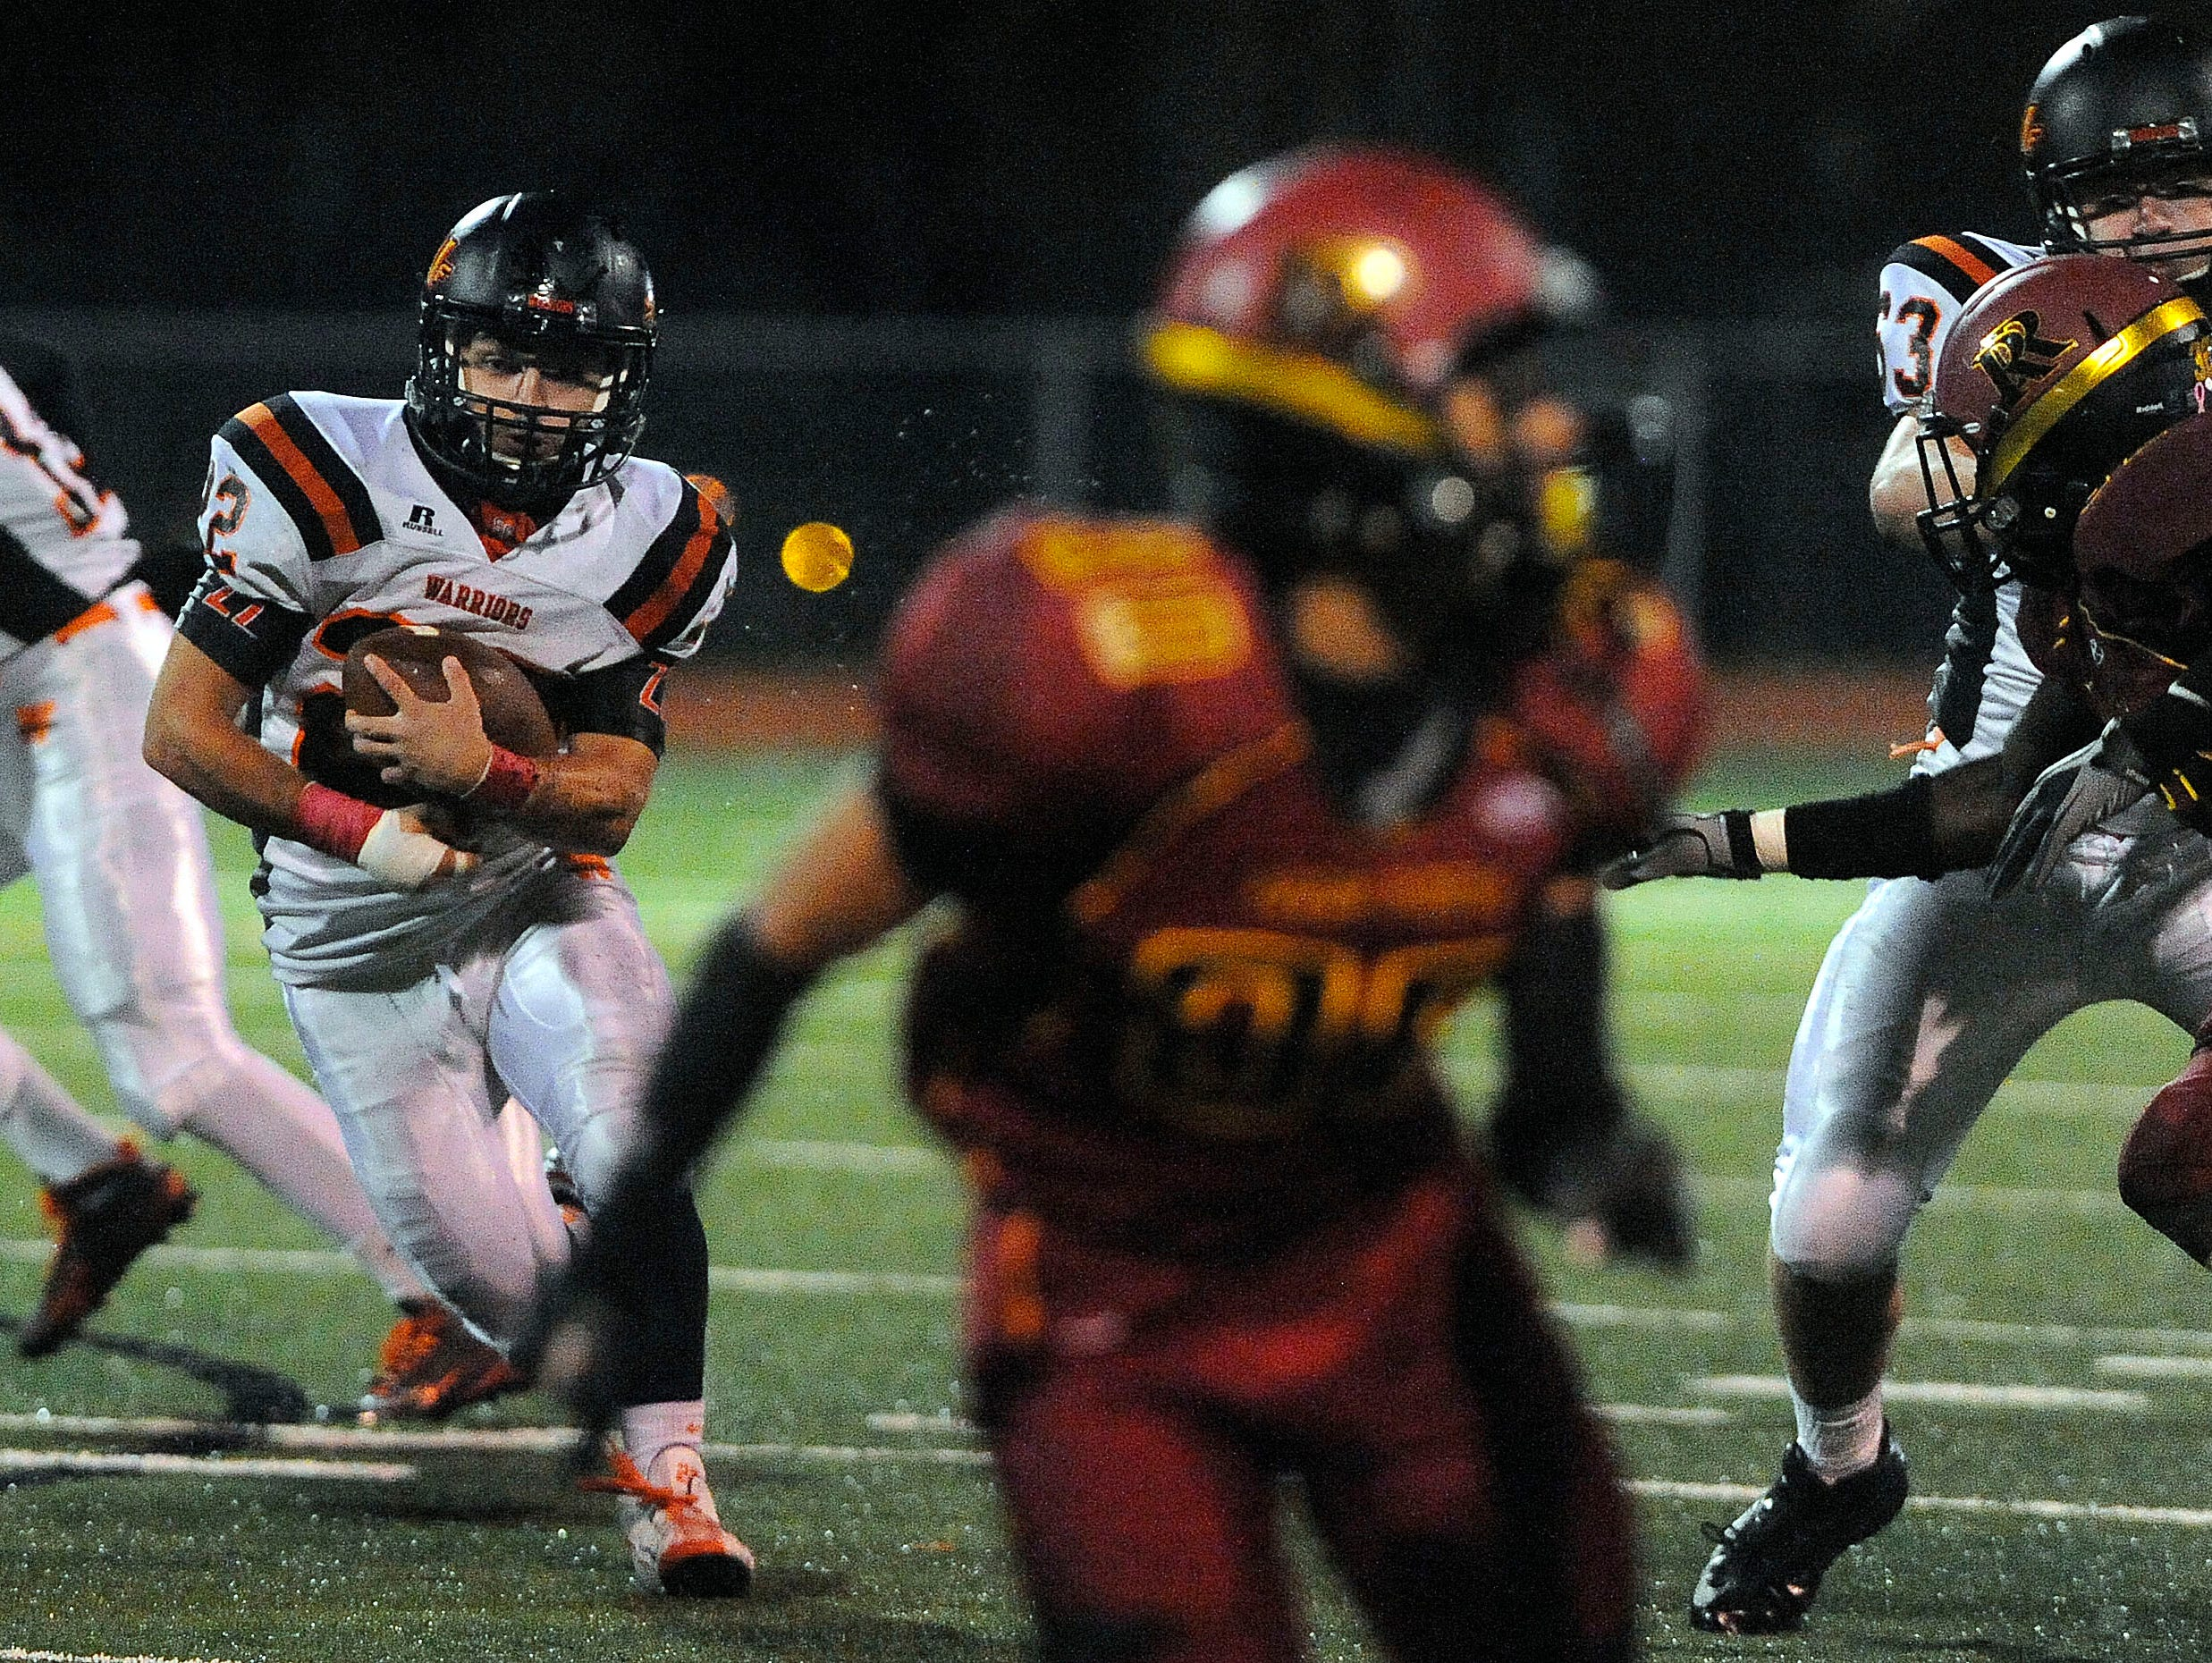 Washington's #22 Chayden drives down the field against Roosevelt during football action at Howard Wood Field in Sioux Falls, S.D., Thursday, Oct. 22, 2015.